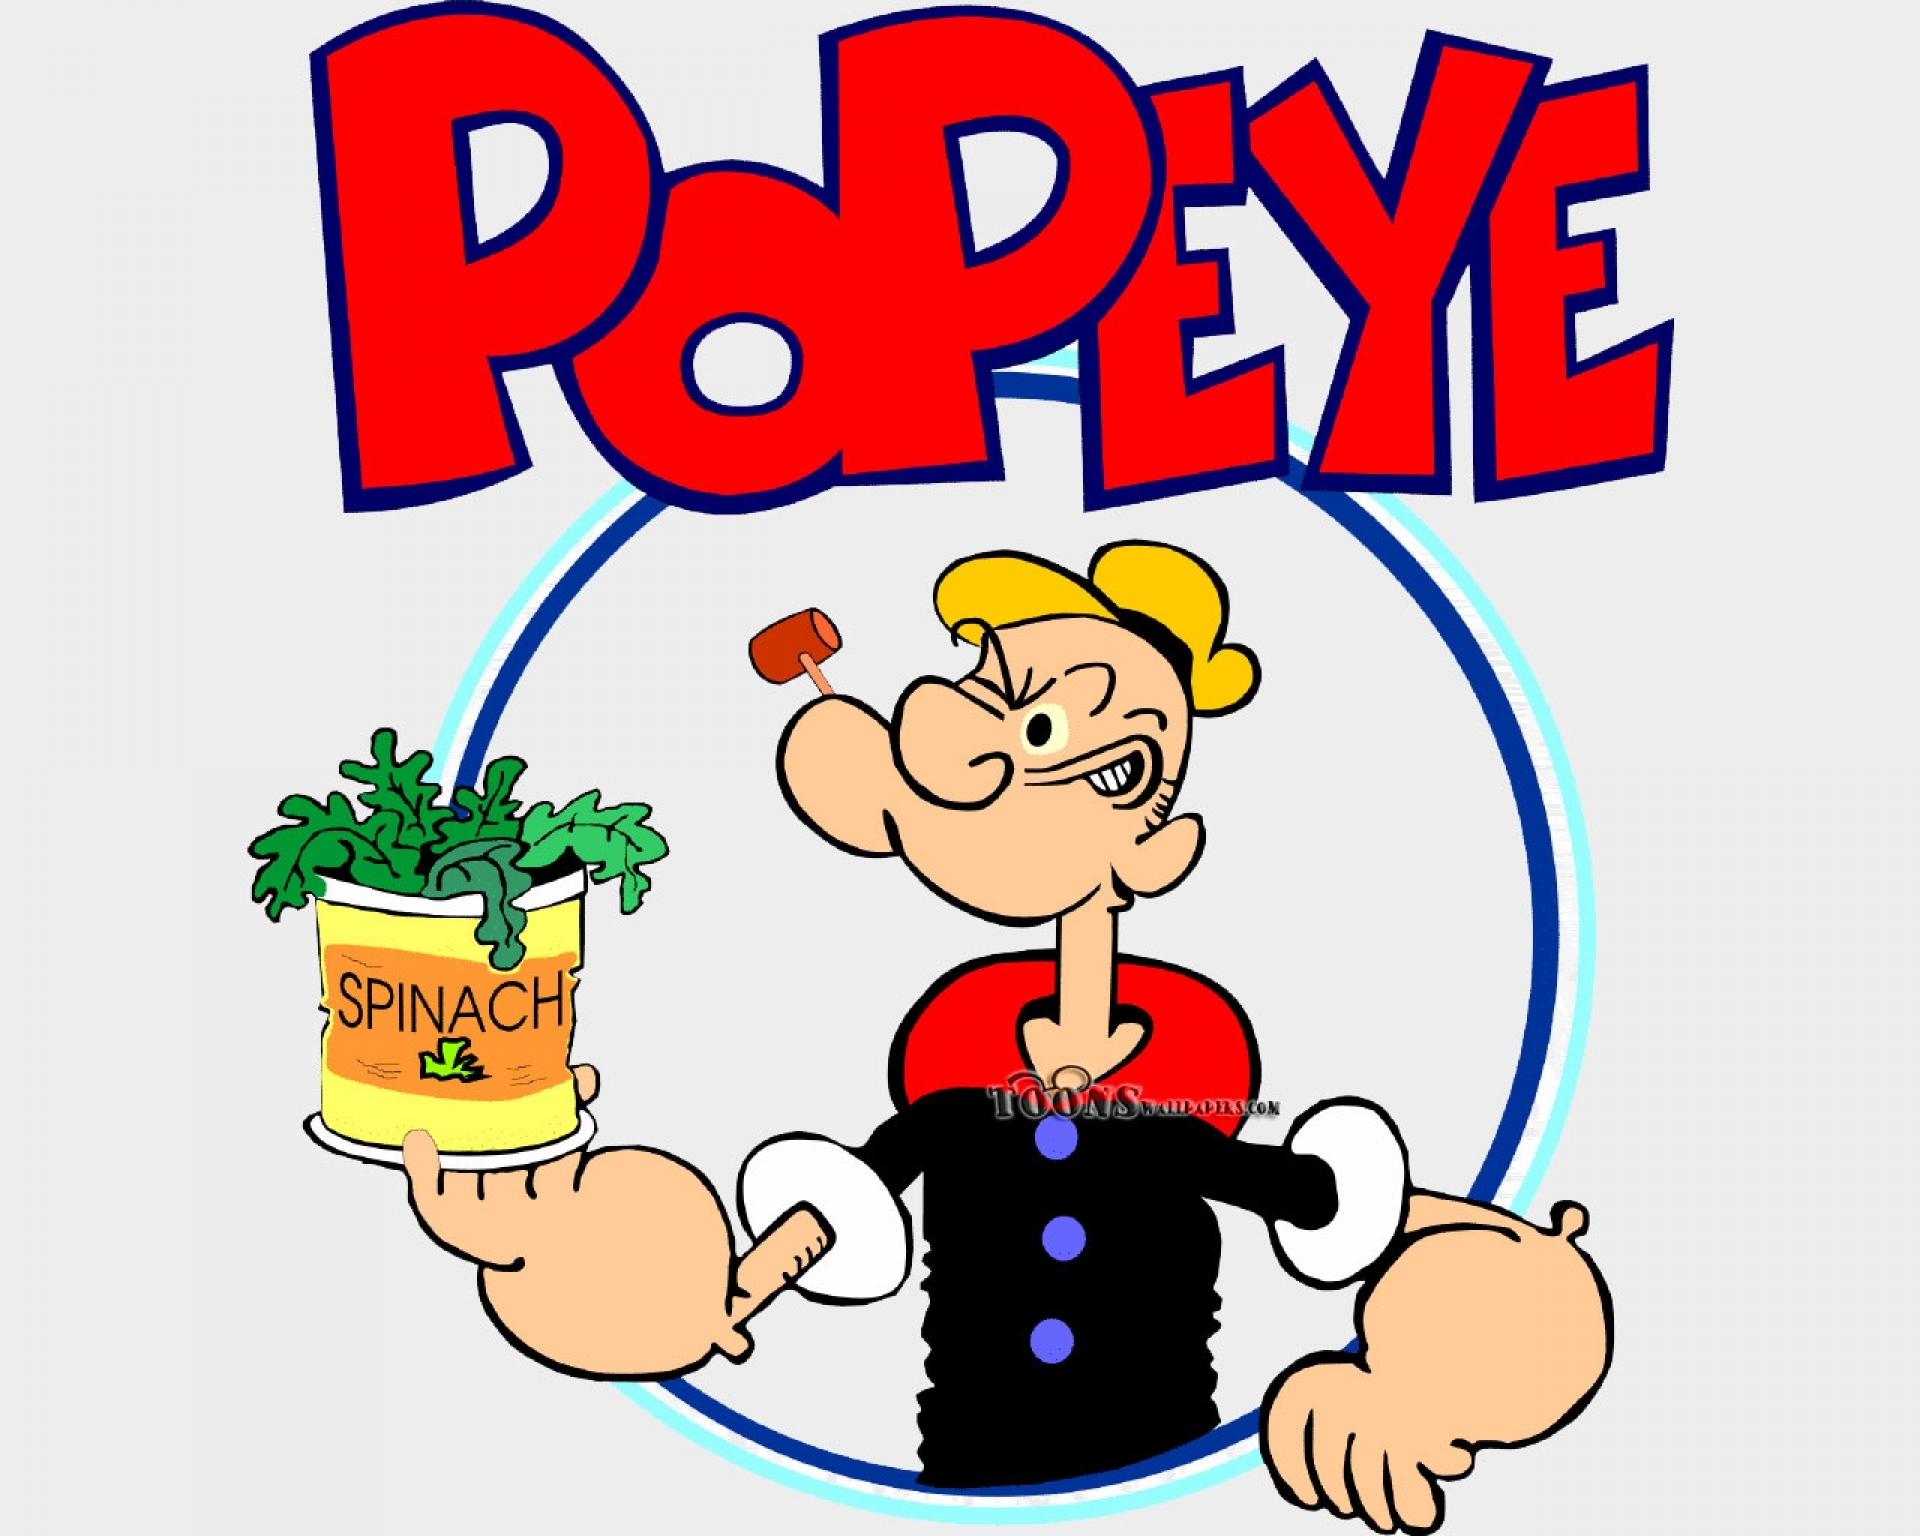 cartoon popeye sailor man 1920x1080